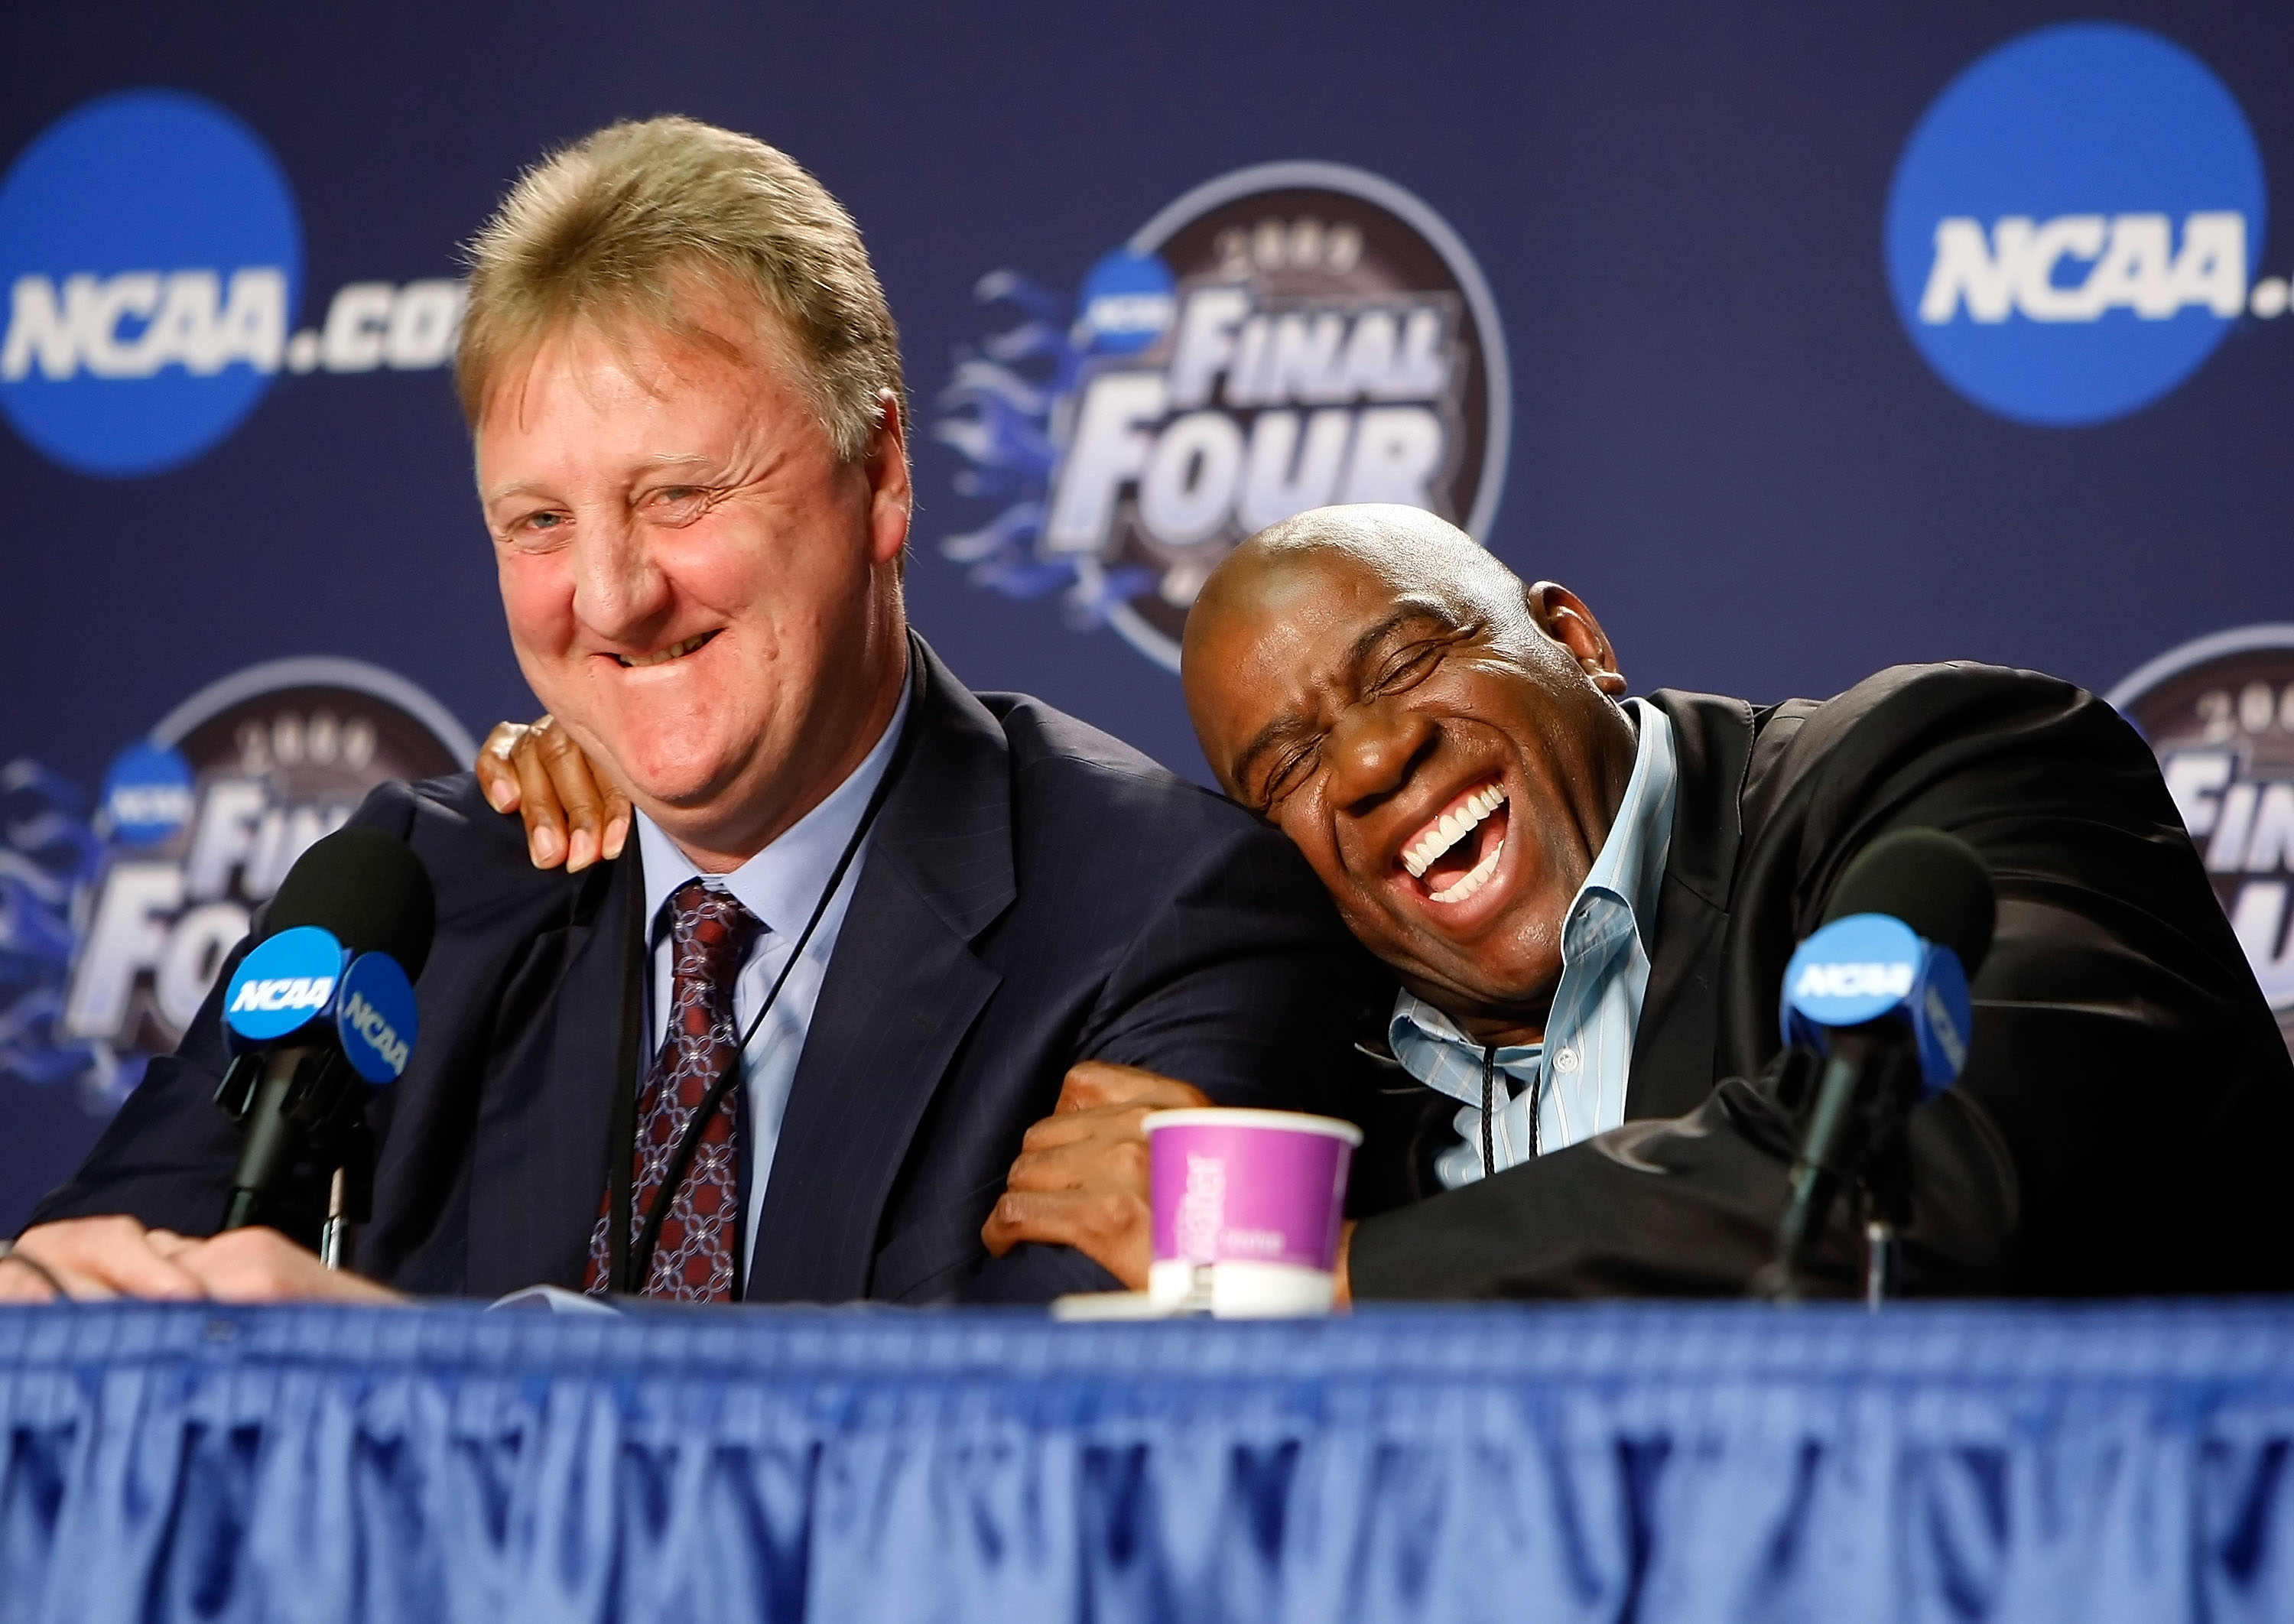 DETROIT - APRIL 06:  (L-R) Larry Bird and Earvin 'Magic' Johnson embrace during a news conference to relive their 1979 NCAA Championship Game between Indiana State and Michigan State before the 2009 NCAA Division I Men's Basketball National Championship g